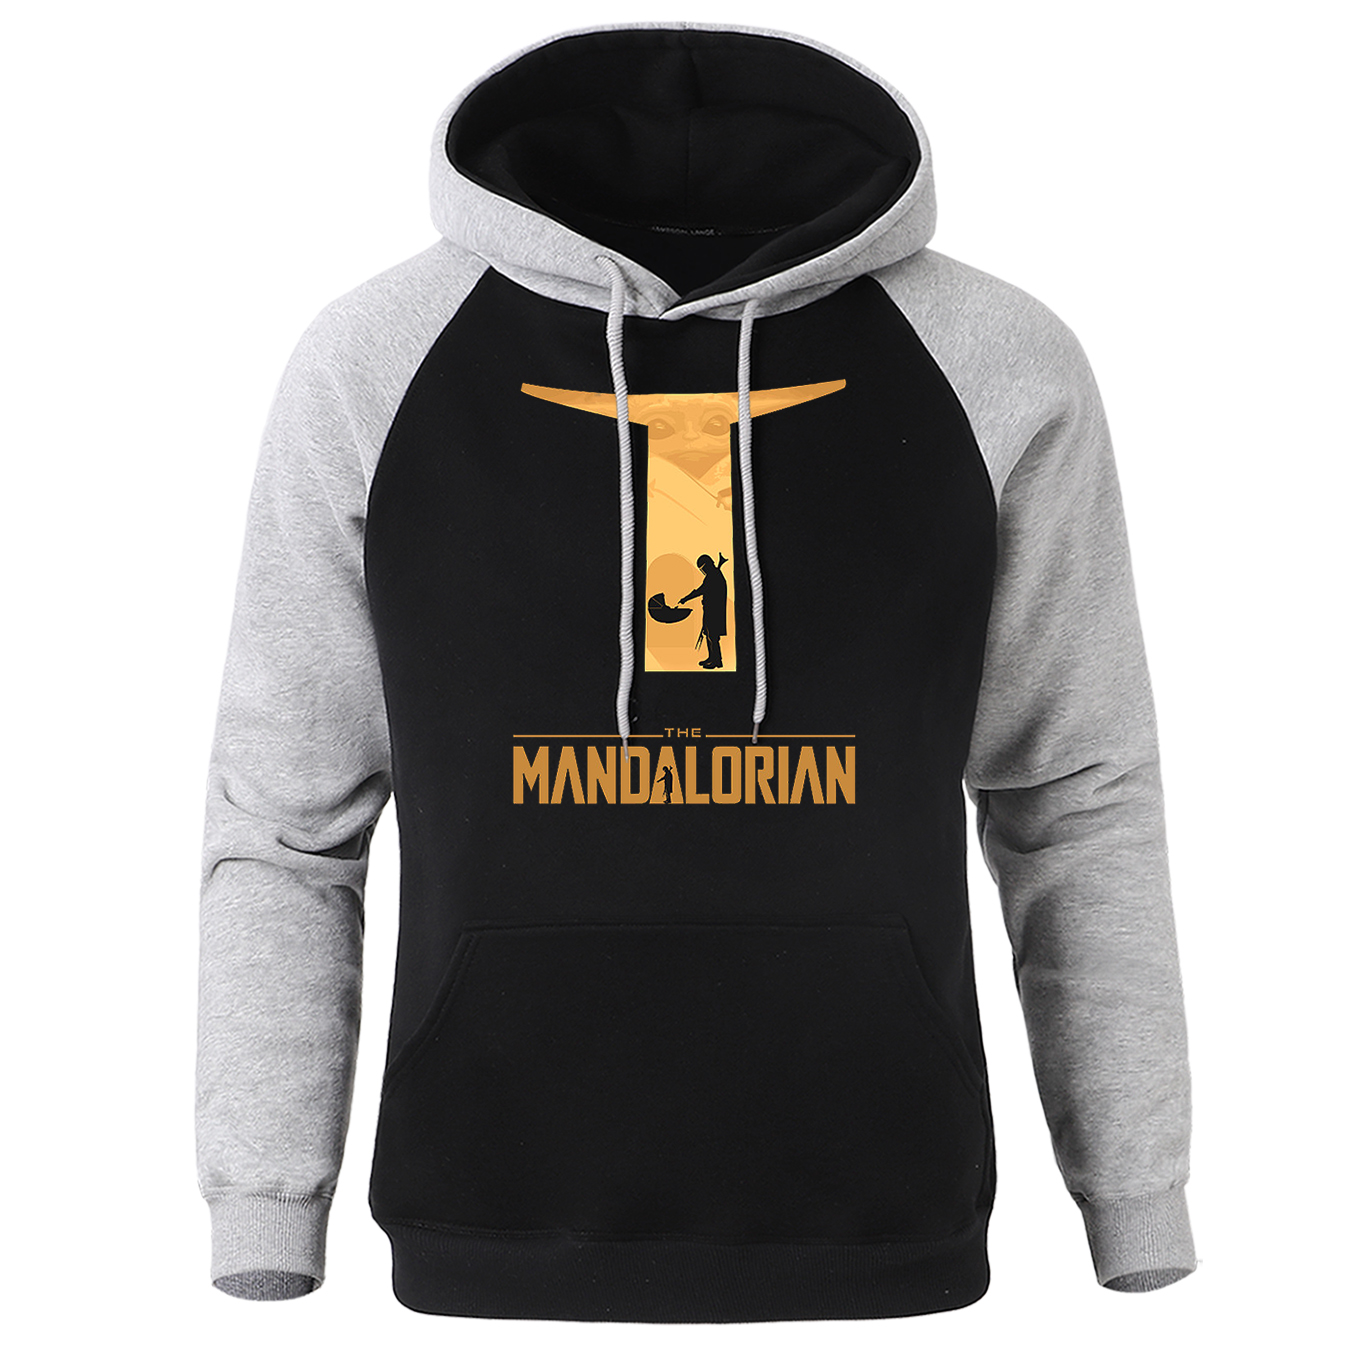 2020 New Male Warm Hoodies The Mandalorian Star Wars Brand Tracksuit Men Spring Fleece Mens Sweatshirt Clothing Personality Tops